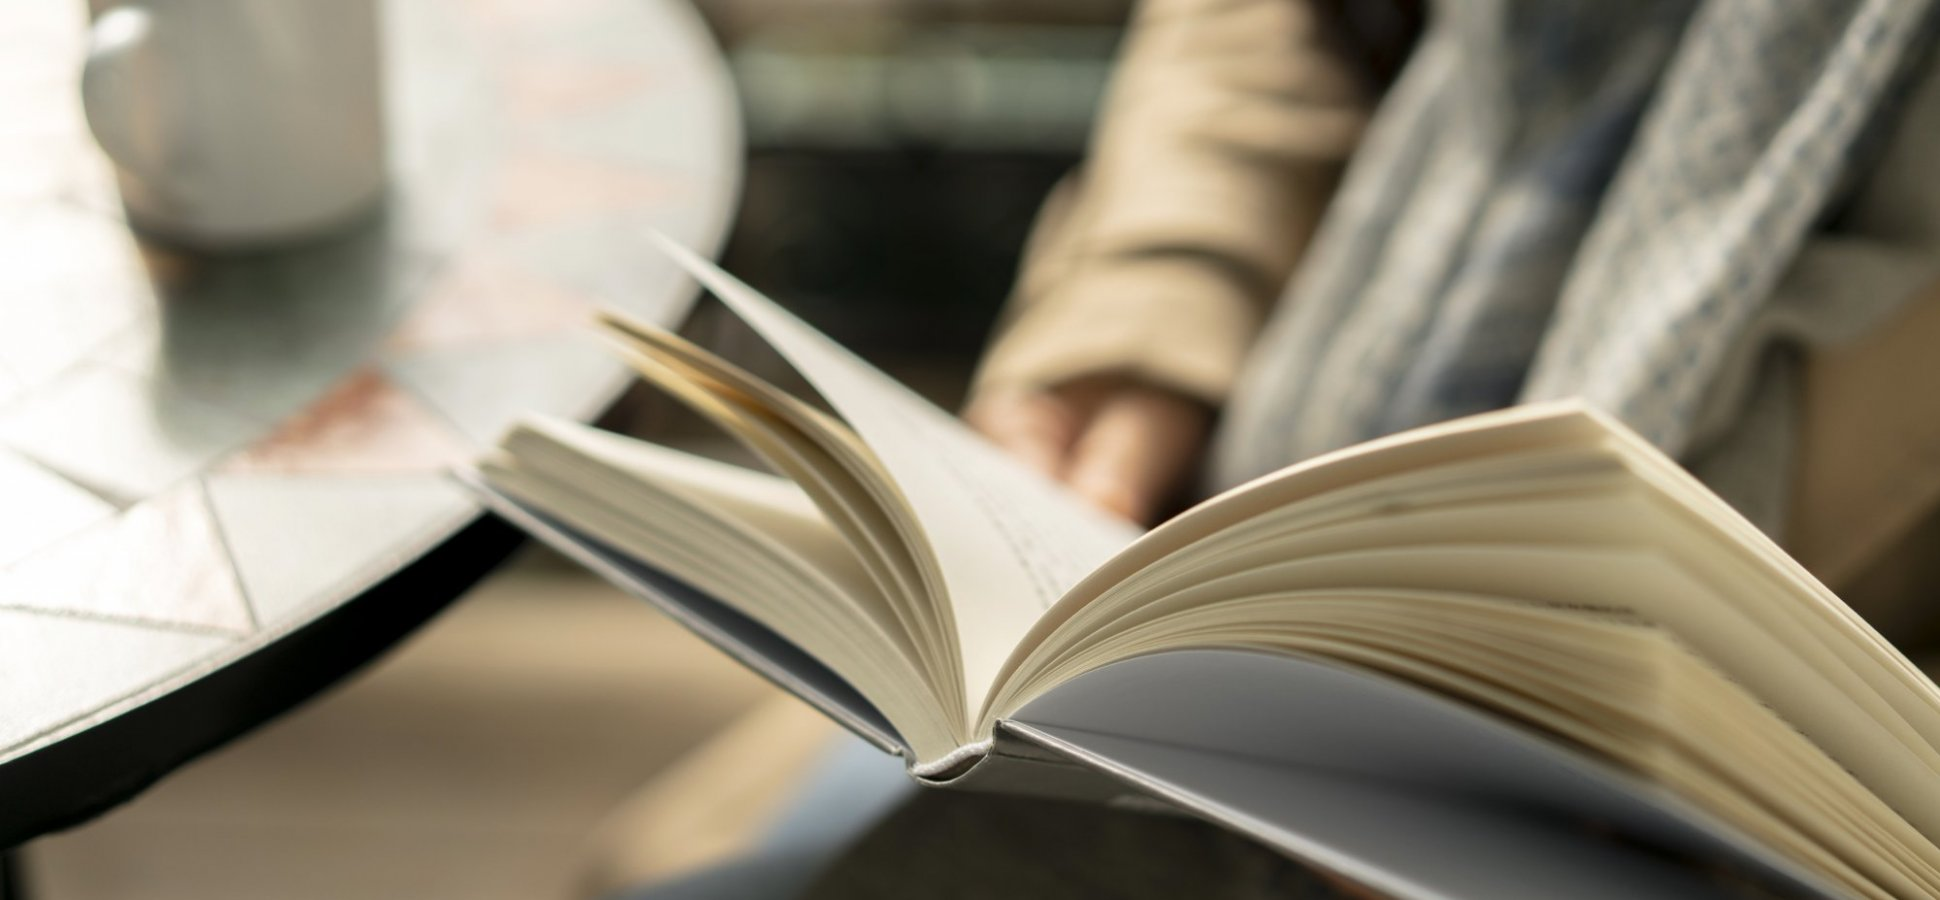 5 Books Every Young, Aspiring Entrepreneur Needs to Read